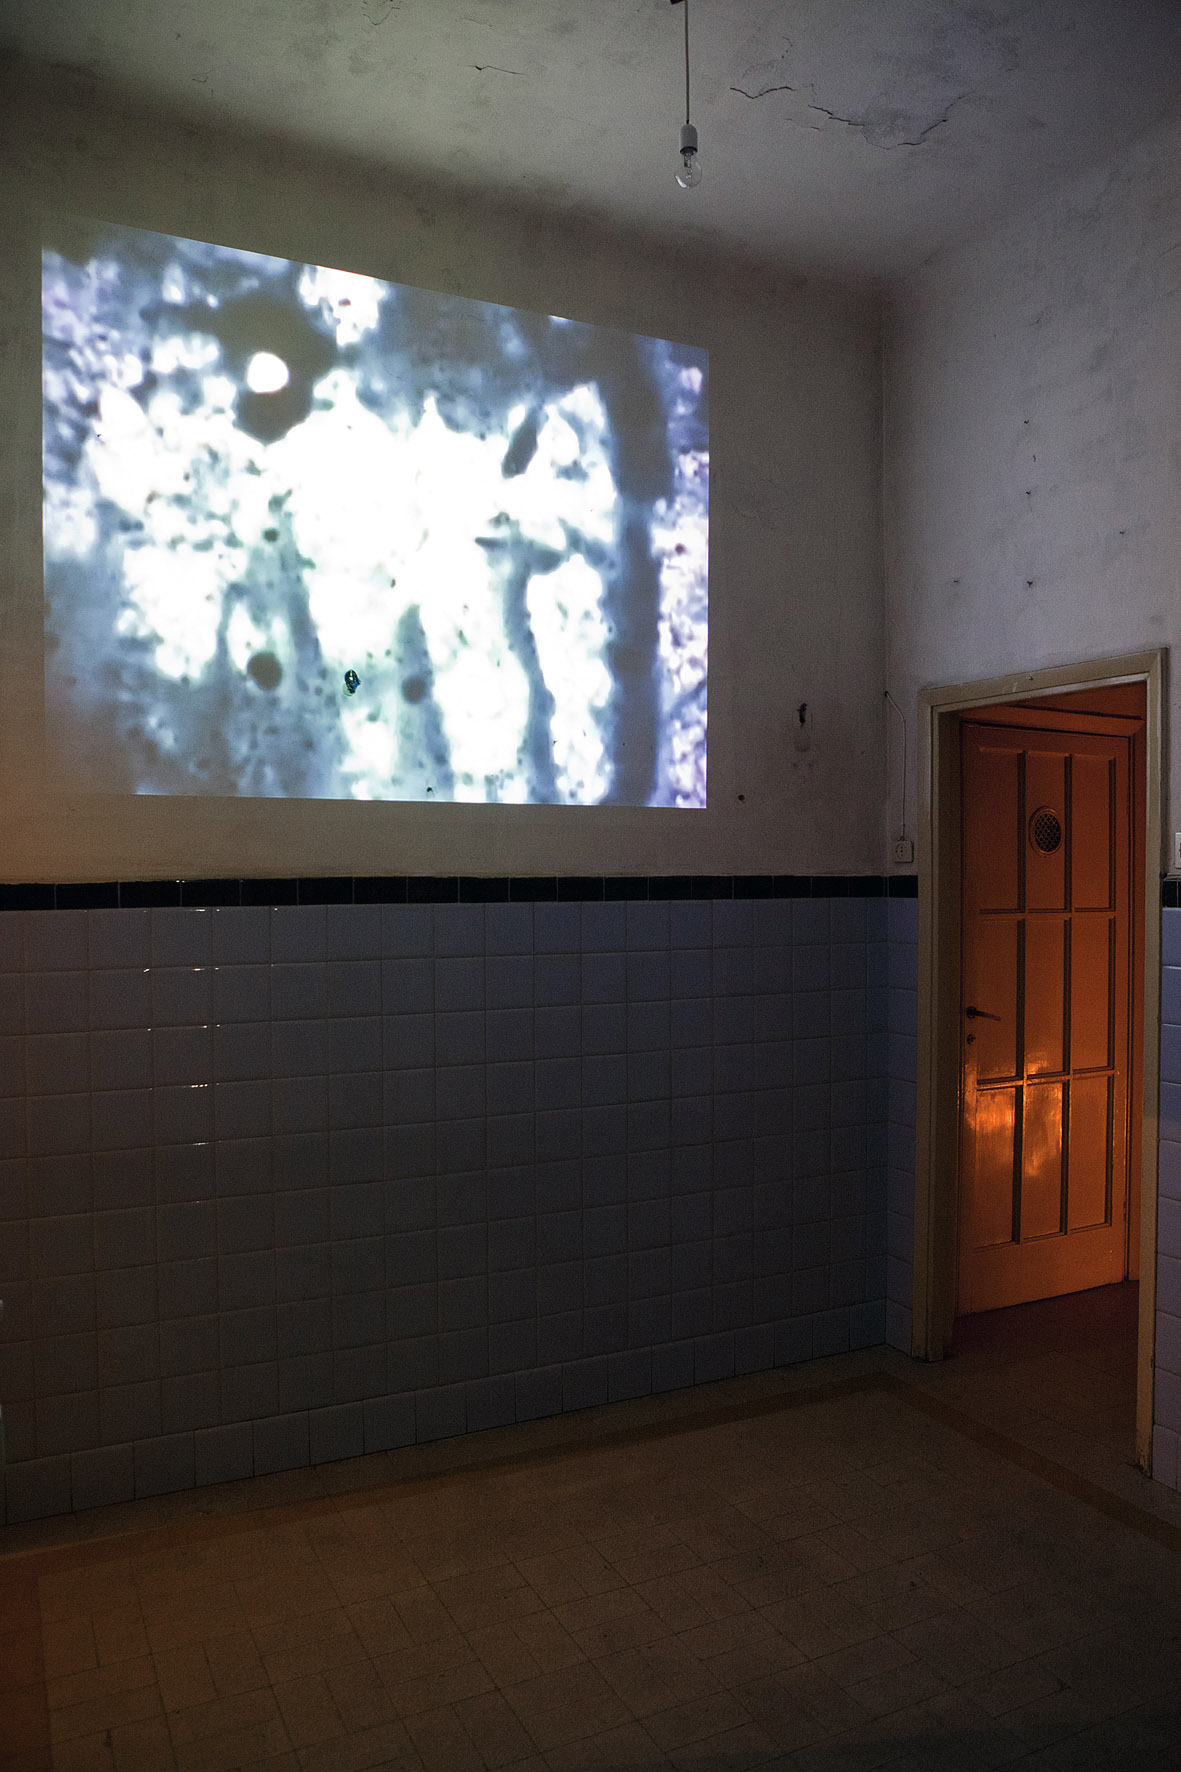 10.A Conversation (video installation view) 15 min. looped video and soundtrack e